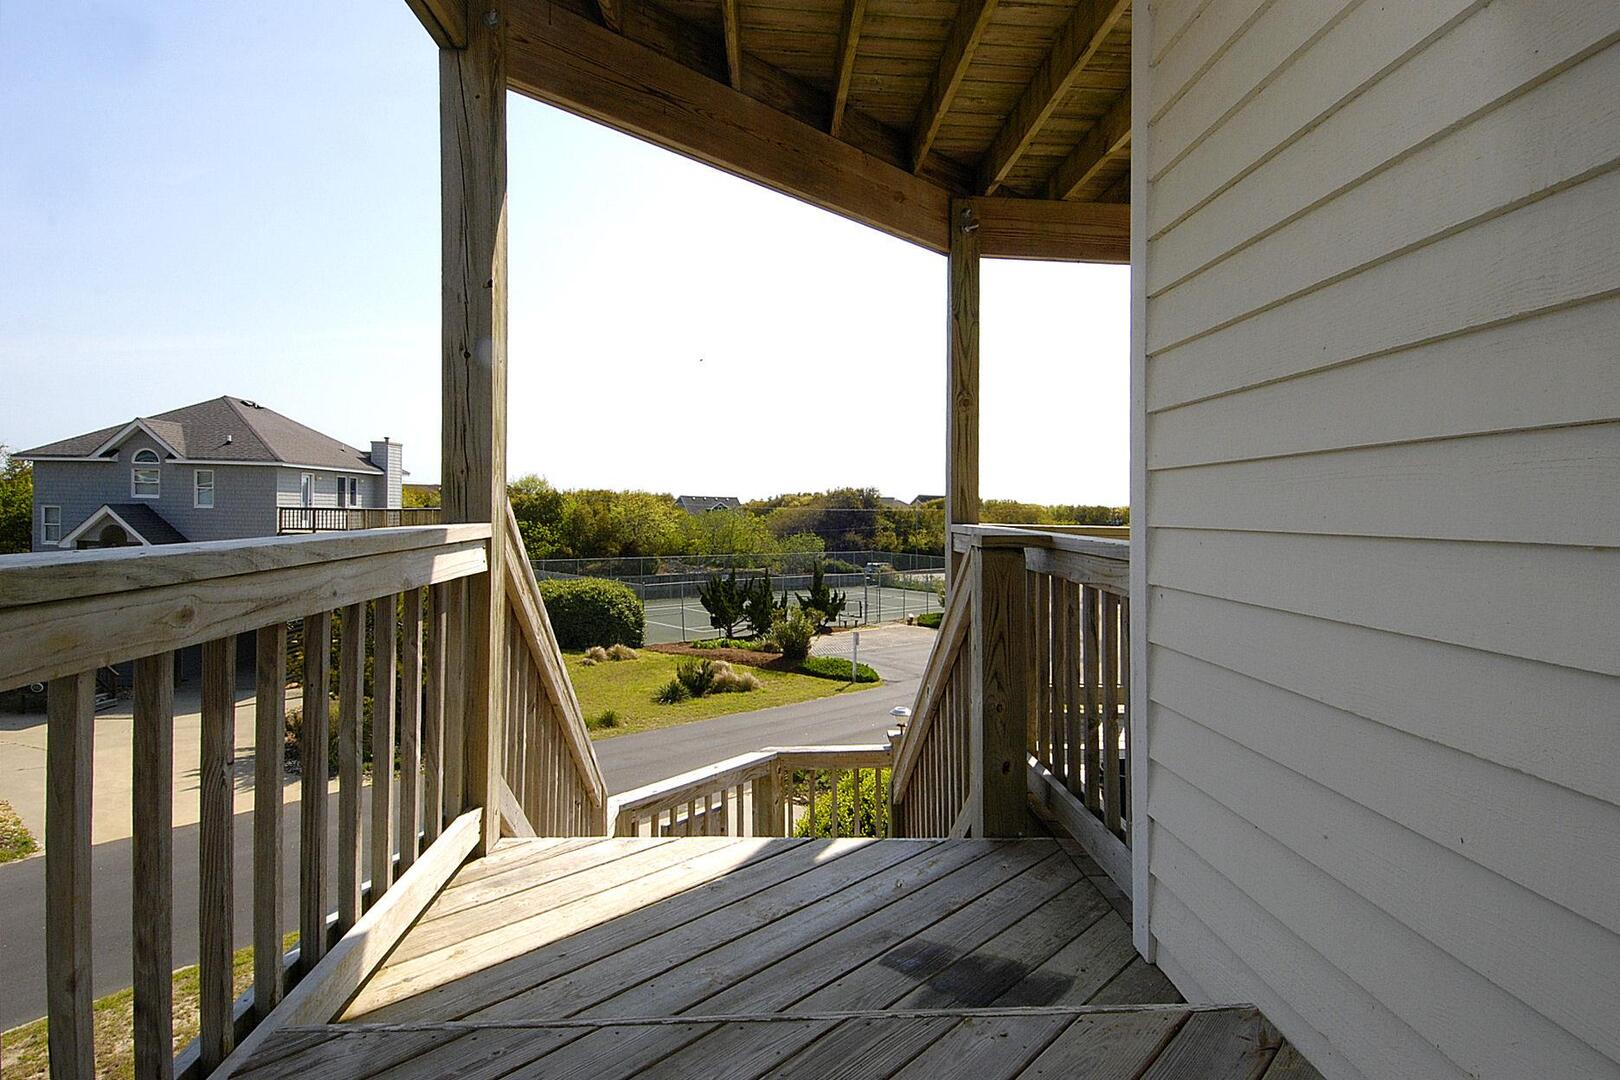 Middle/Entry Level,Porch,